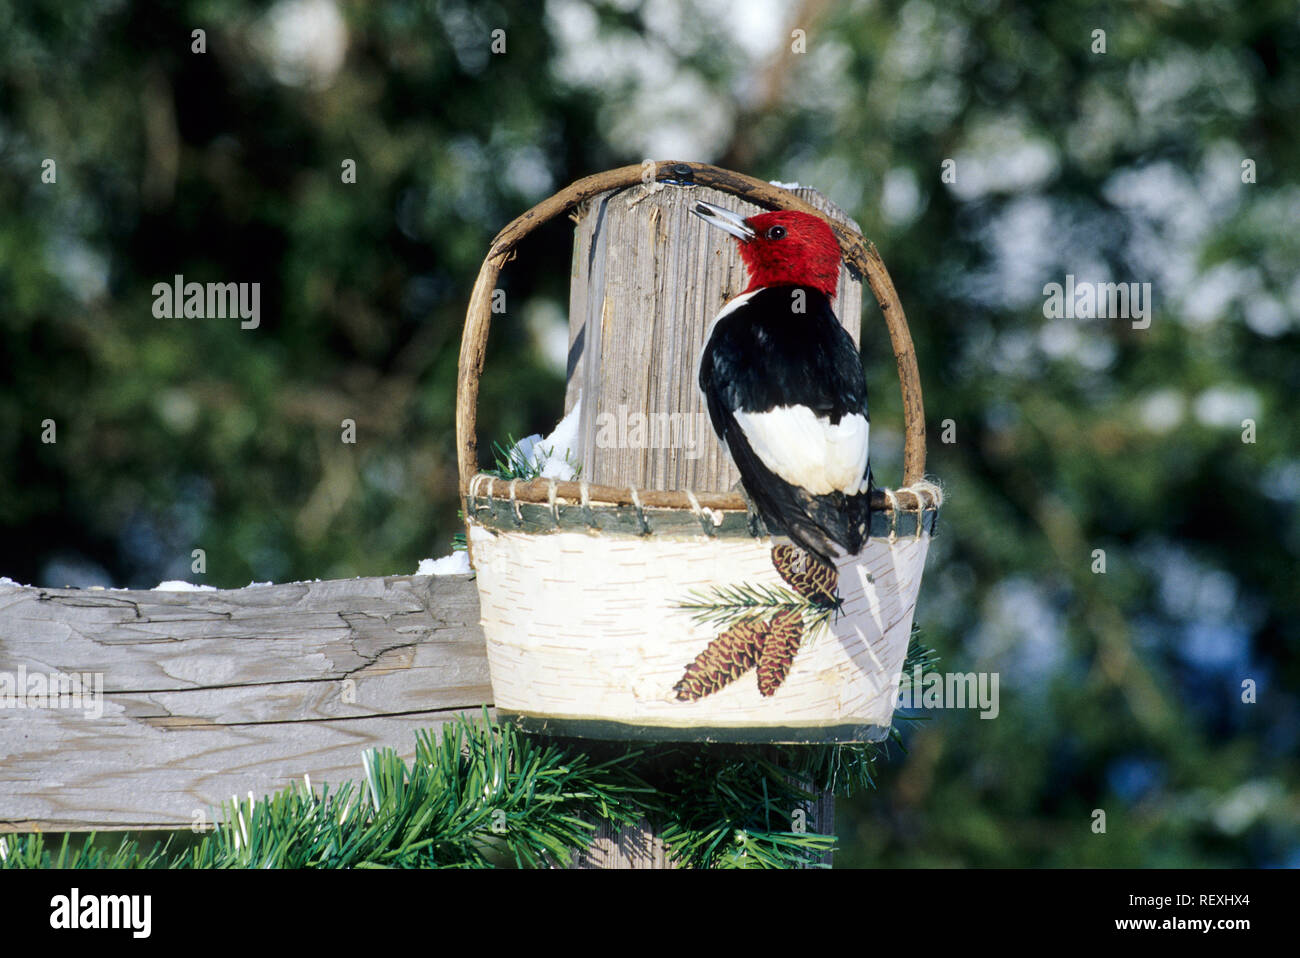 01197-032.19 Red-headed Woodpecker (Melanerpes erythrocephalus) eating from birch basket feeder, Marion Co IL - Stock Image